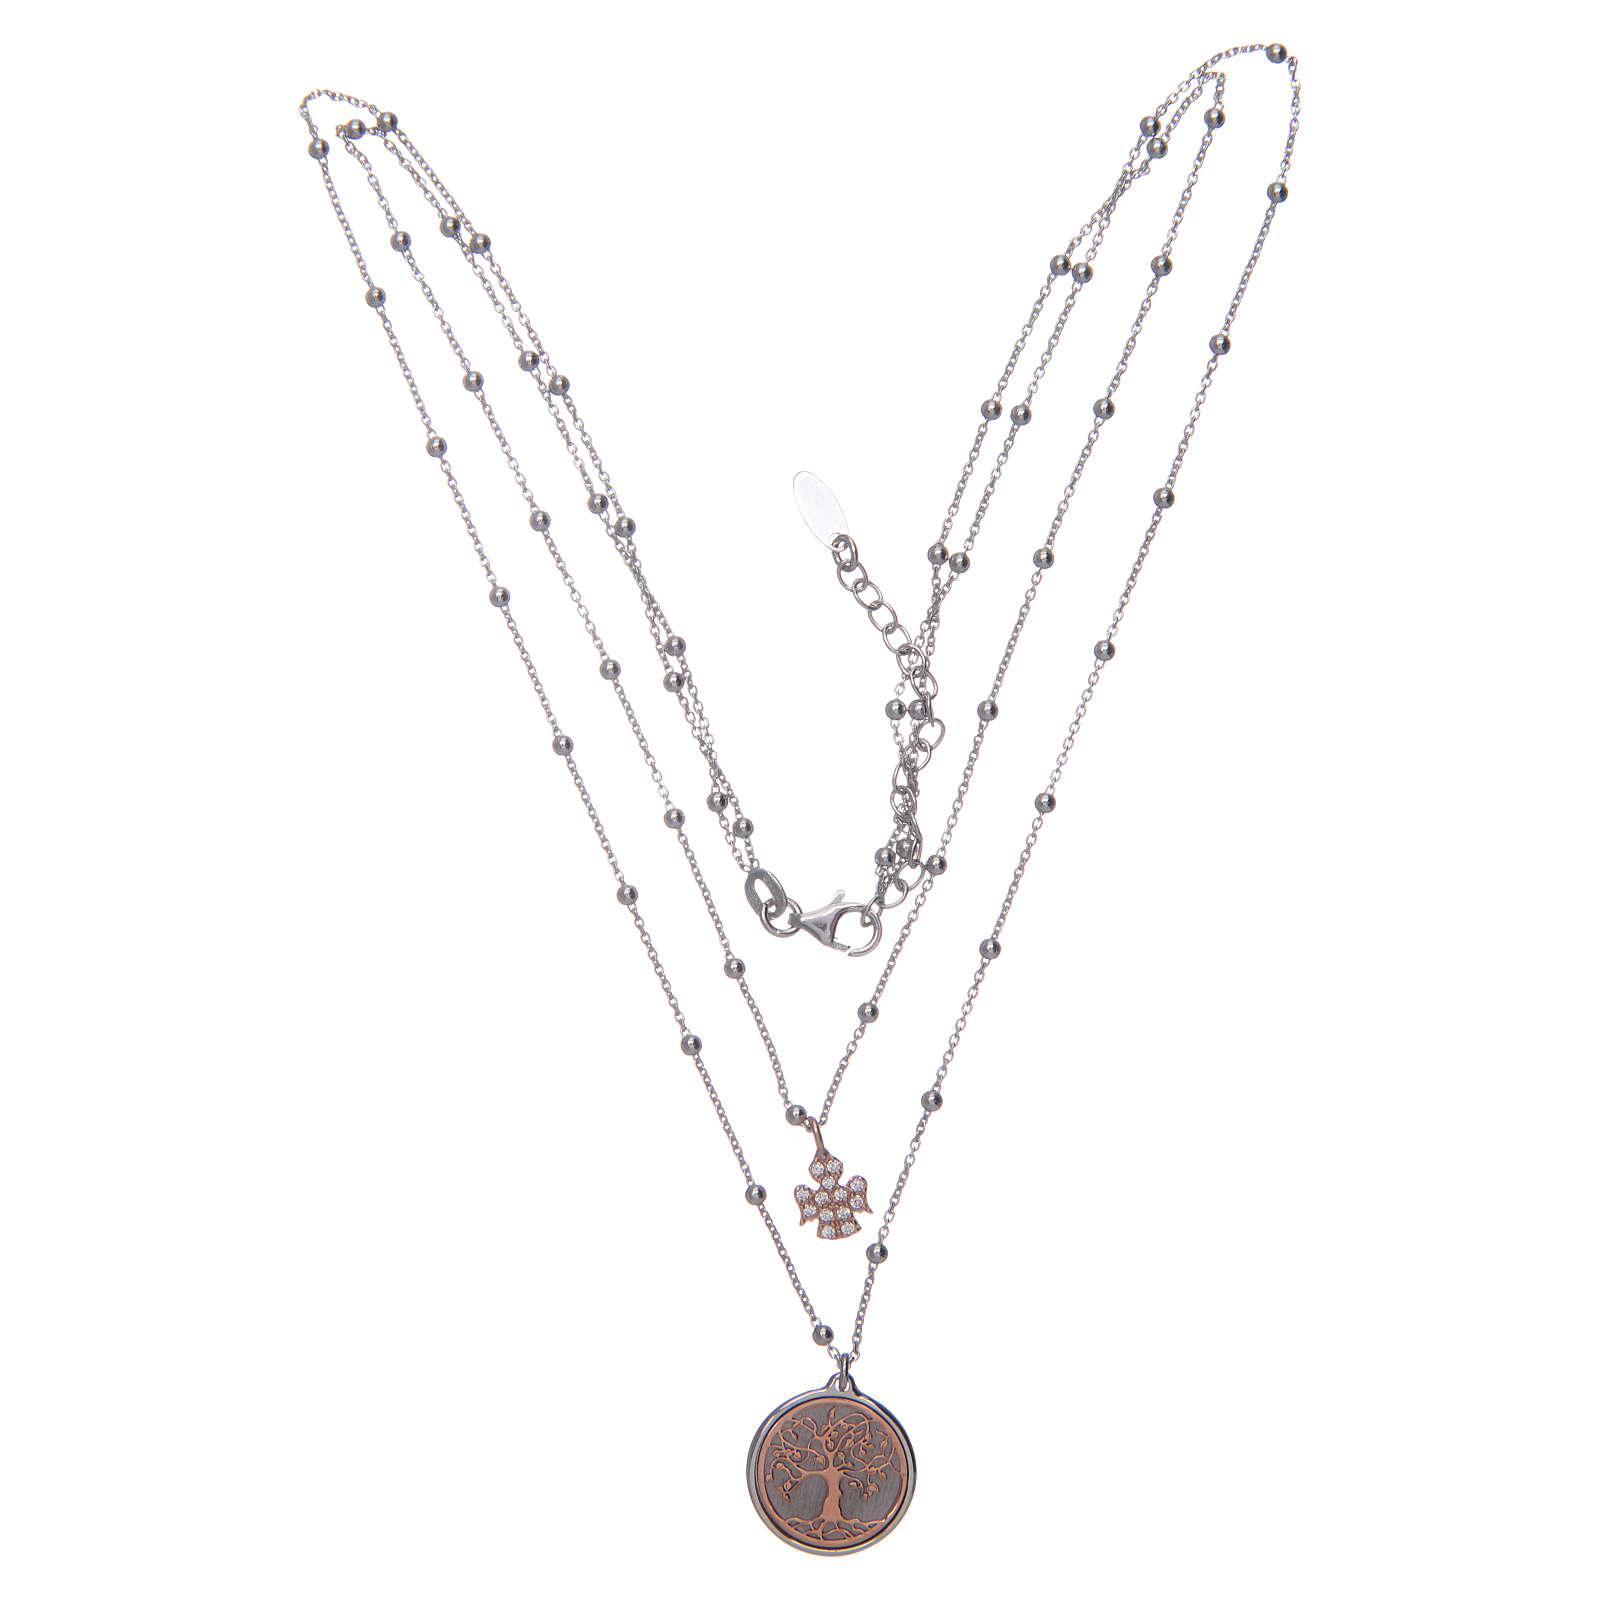 Amen choker with Tree of Life pendant in 925 sterling silver 4